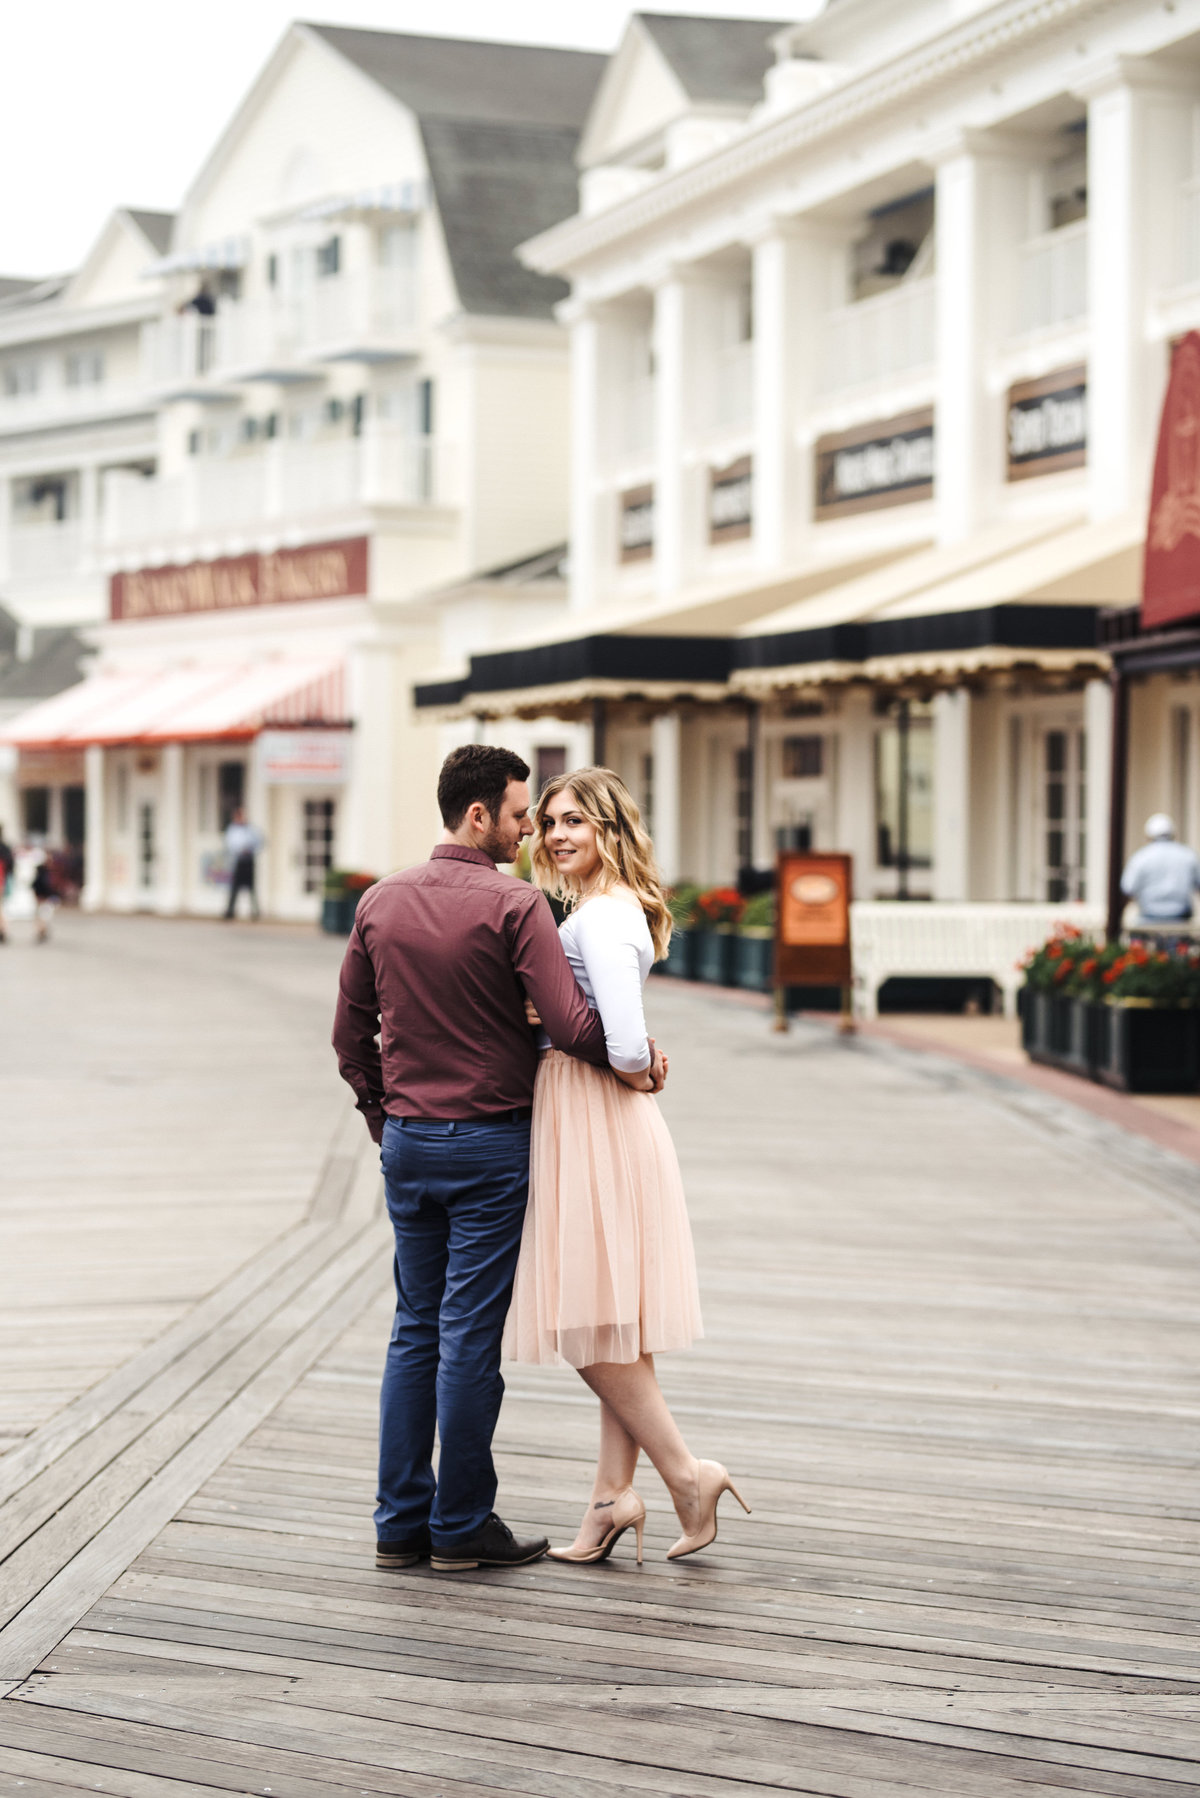 Ally & Brett's Disney Engagement Session (56 of 243)